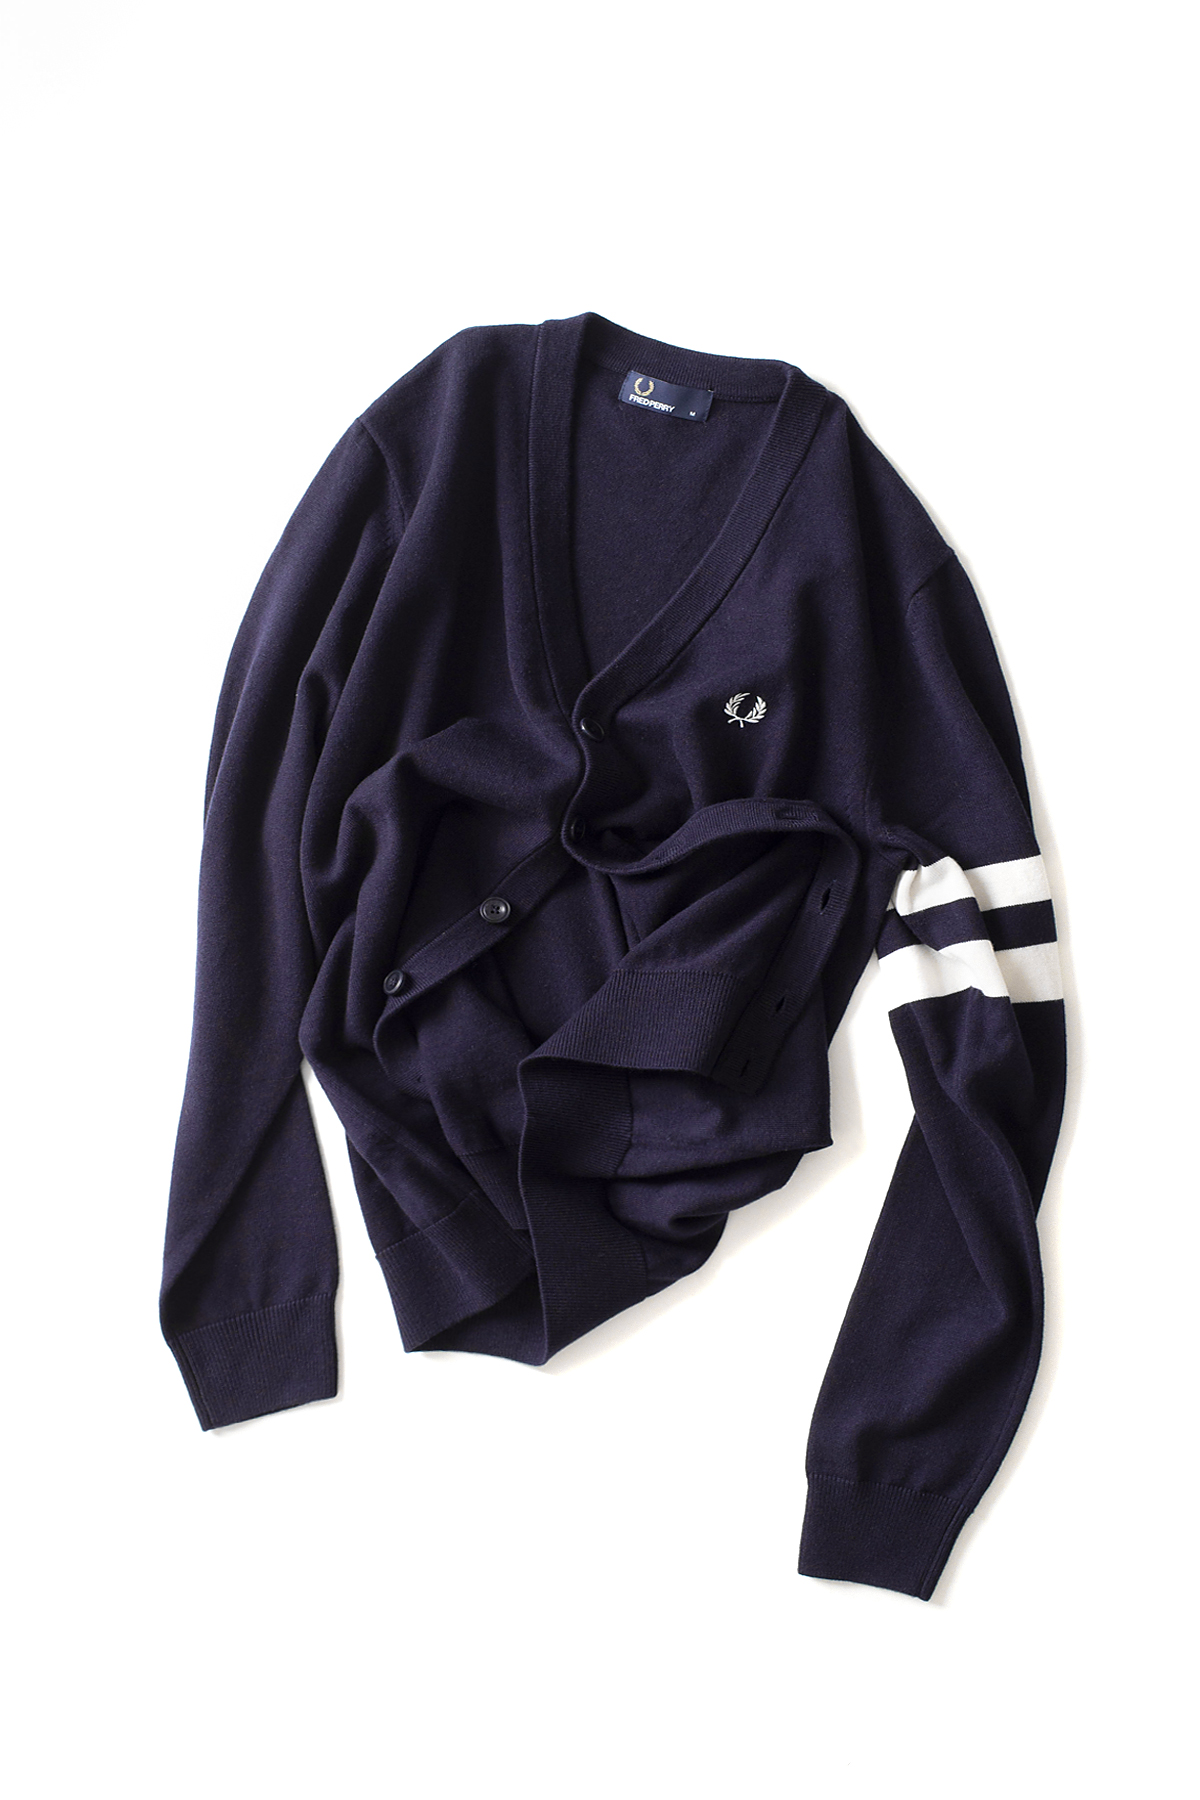 FRED PERRY : Tipped Sleeve Cardigan (Navy)